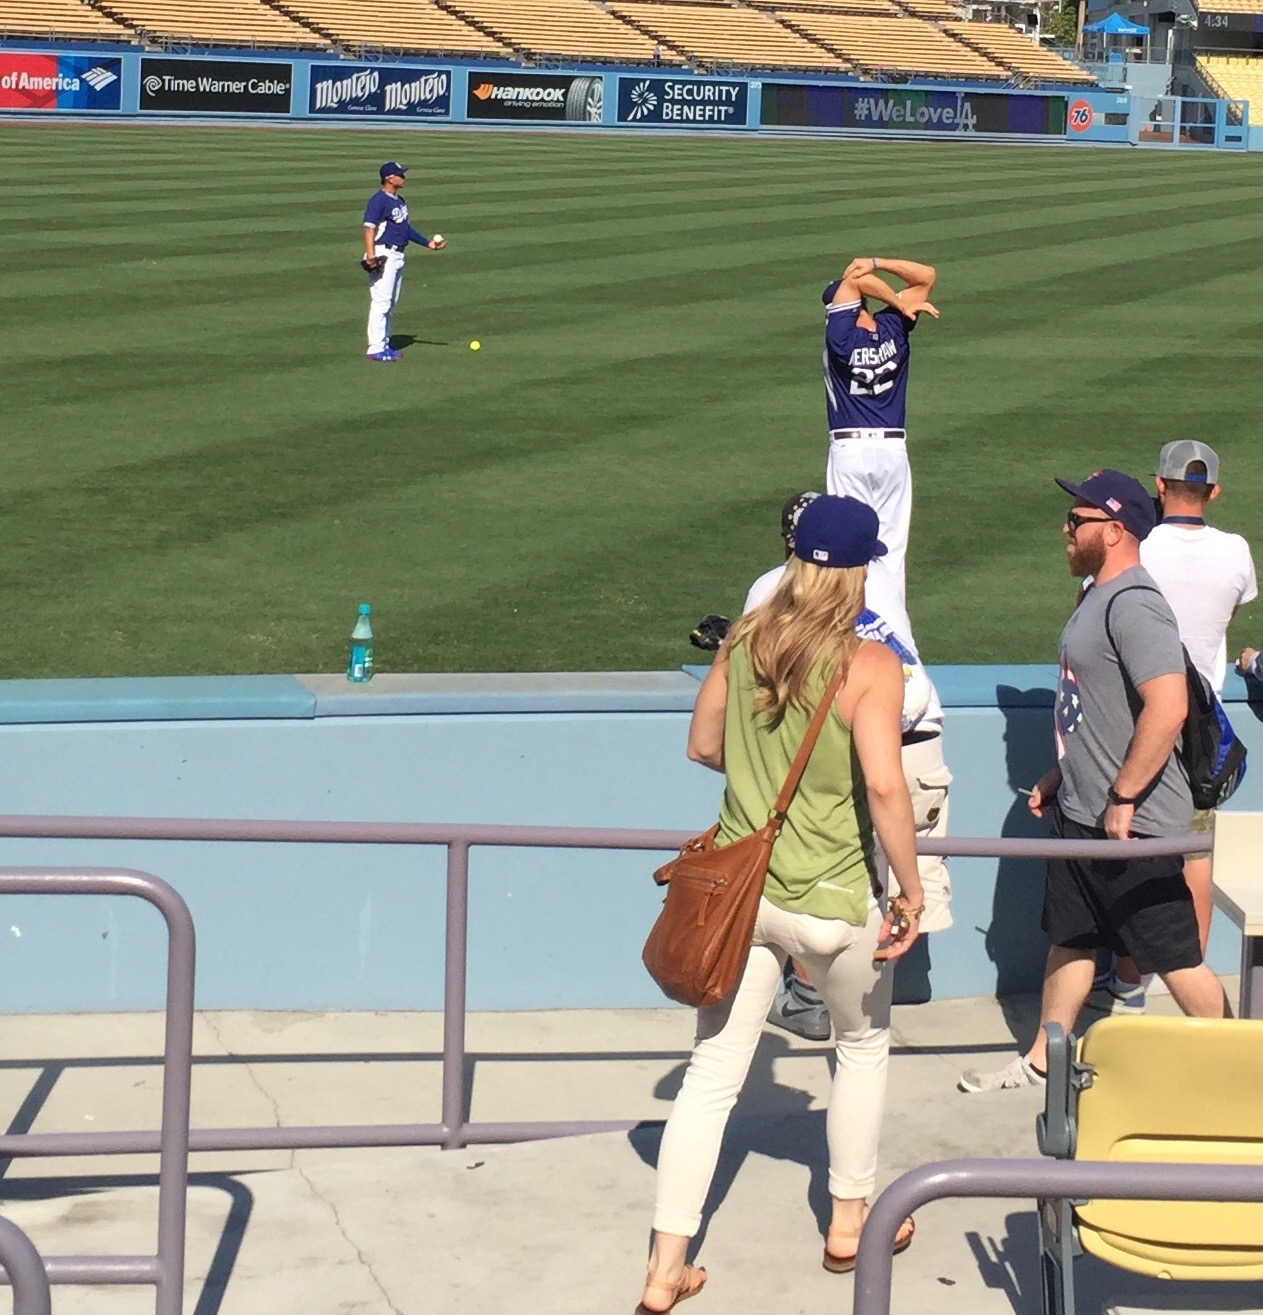 Clayton Kershaw Stretching